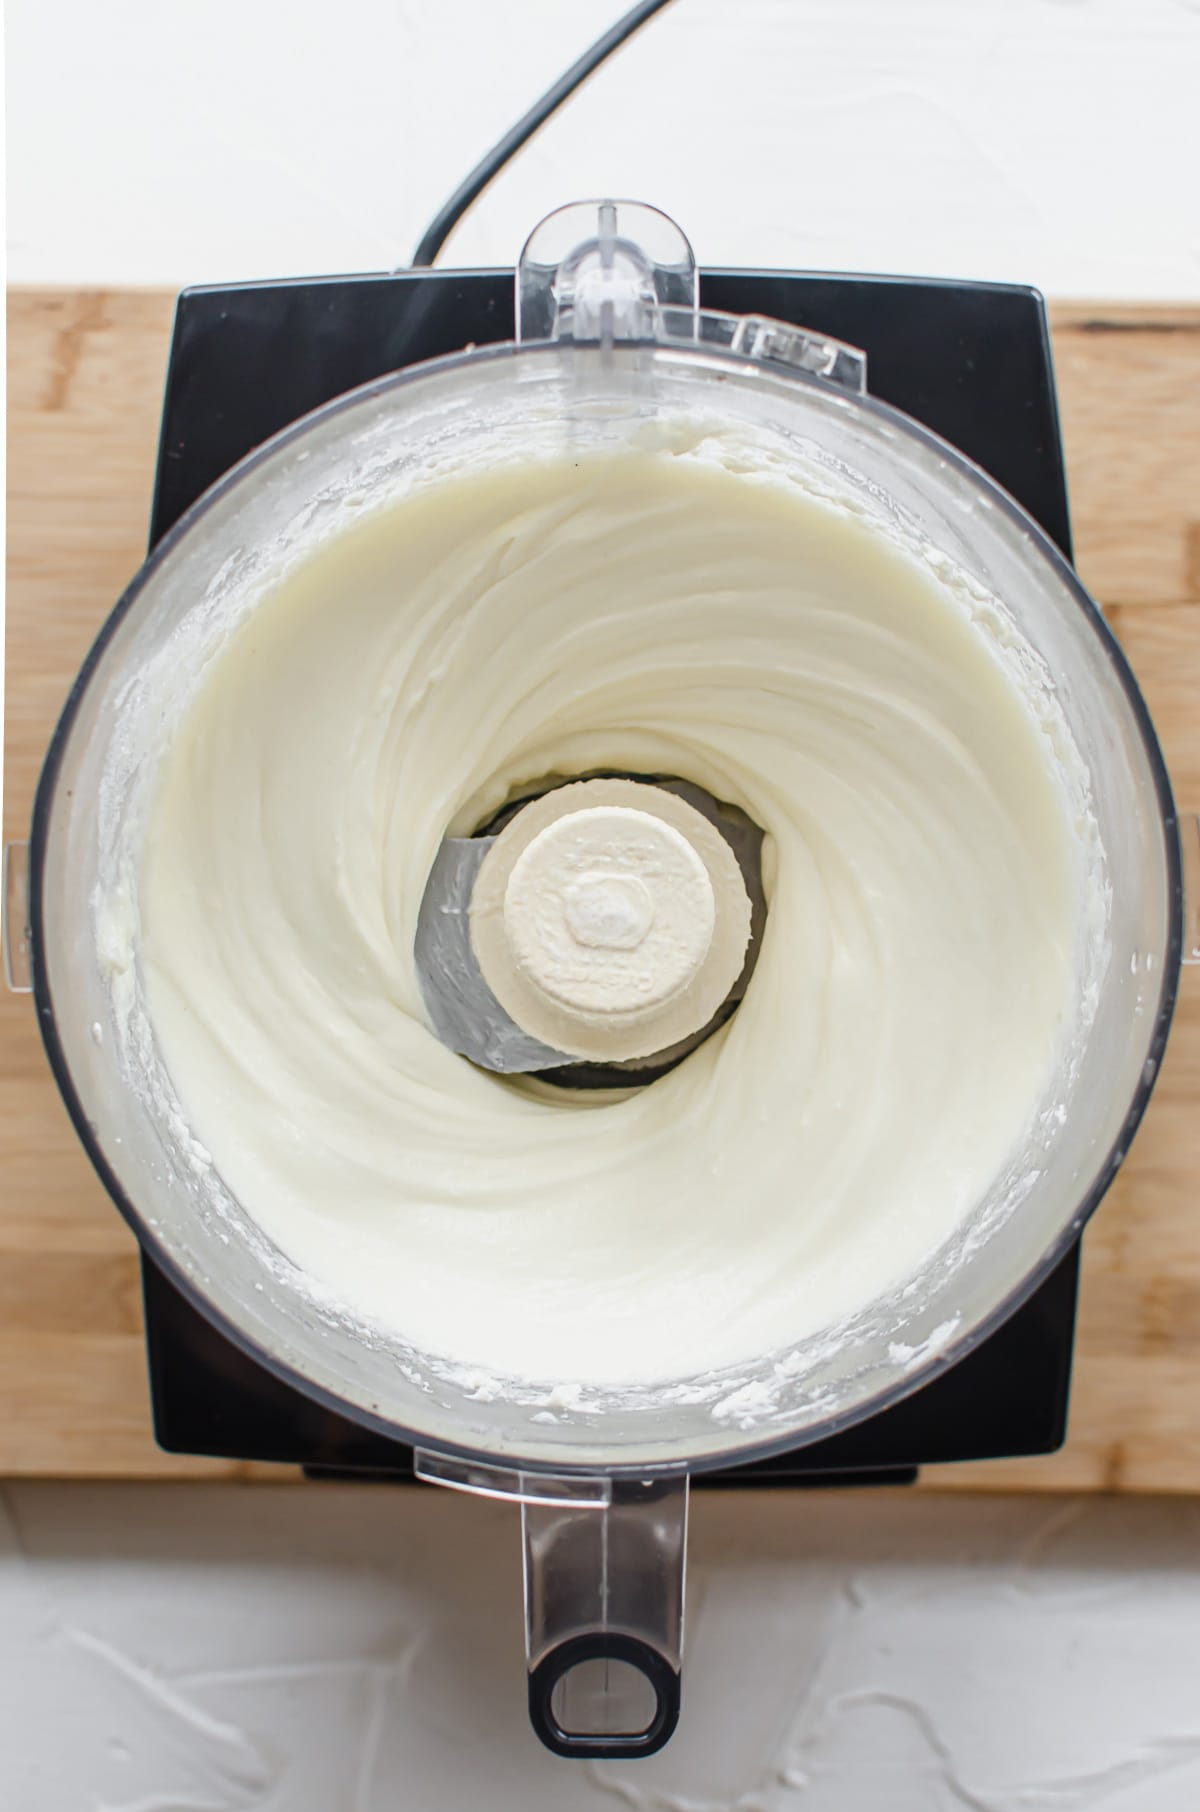 Mixed cheesecake batter in the bowl of a food processor.